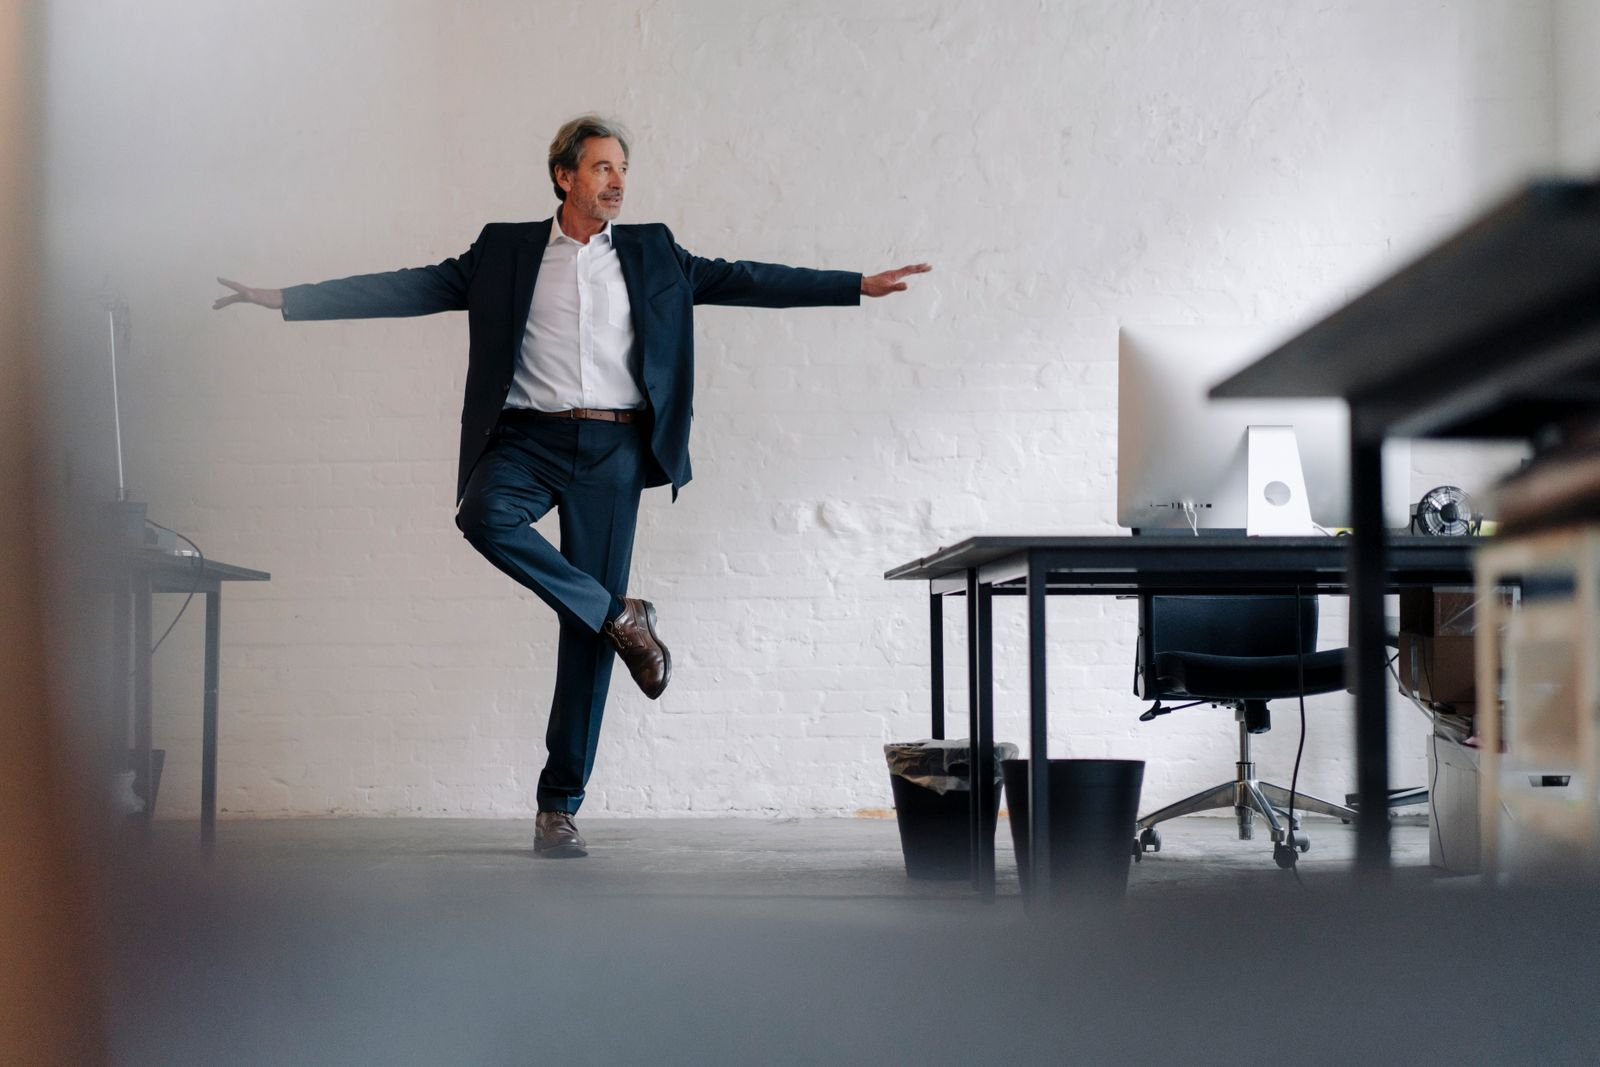 Senior businessman doing a yoga exercise in office